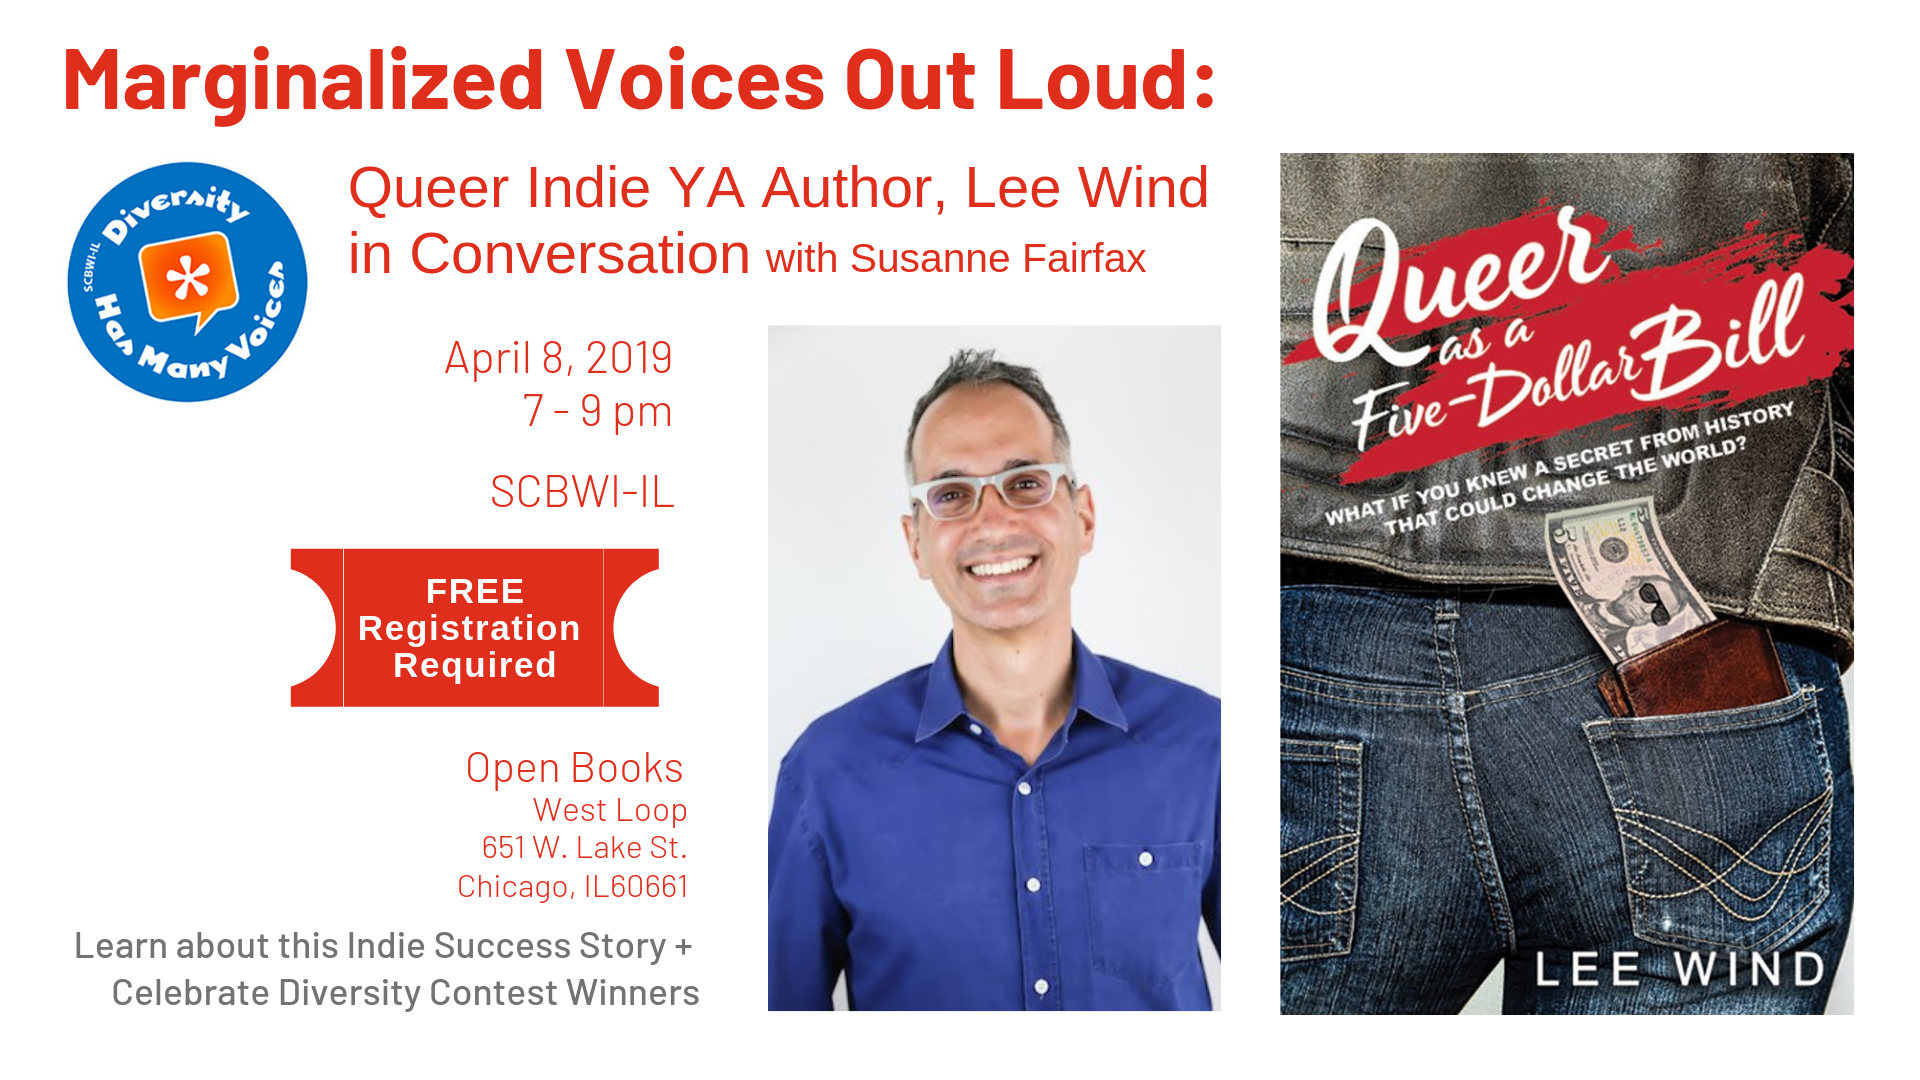 Illinois | SCBWI-IL Marginalized Voices Out Loud: Queer YA Indie